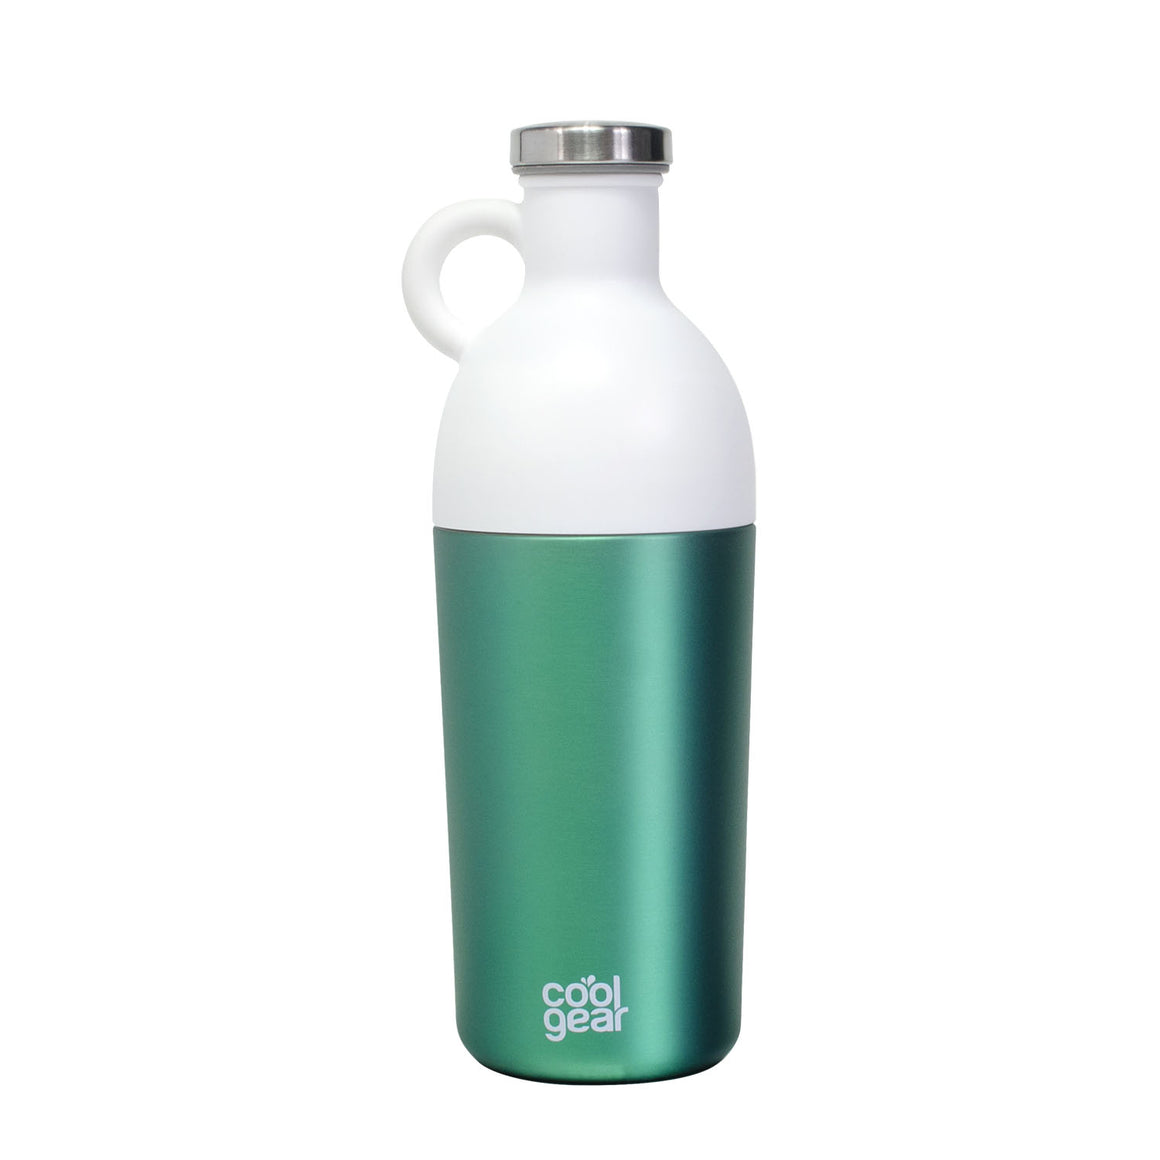 Teal Moonshine 28 Oz Water Bottle at Cool Gear Water Bottles,Stainless Steel